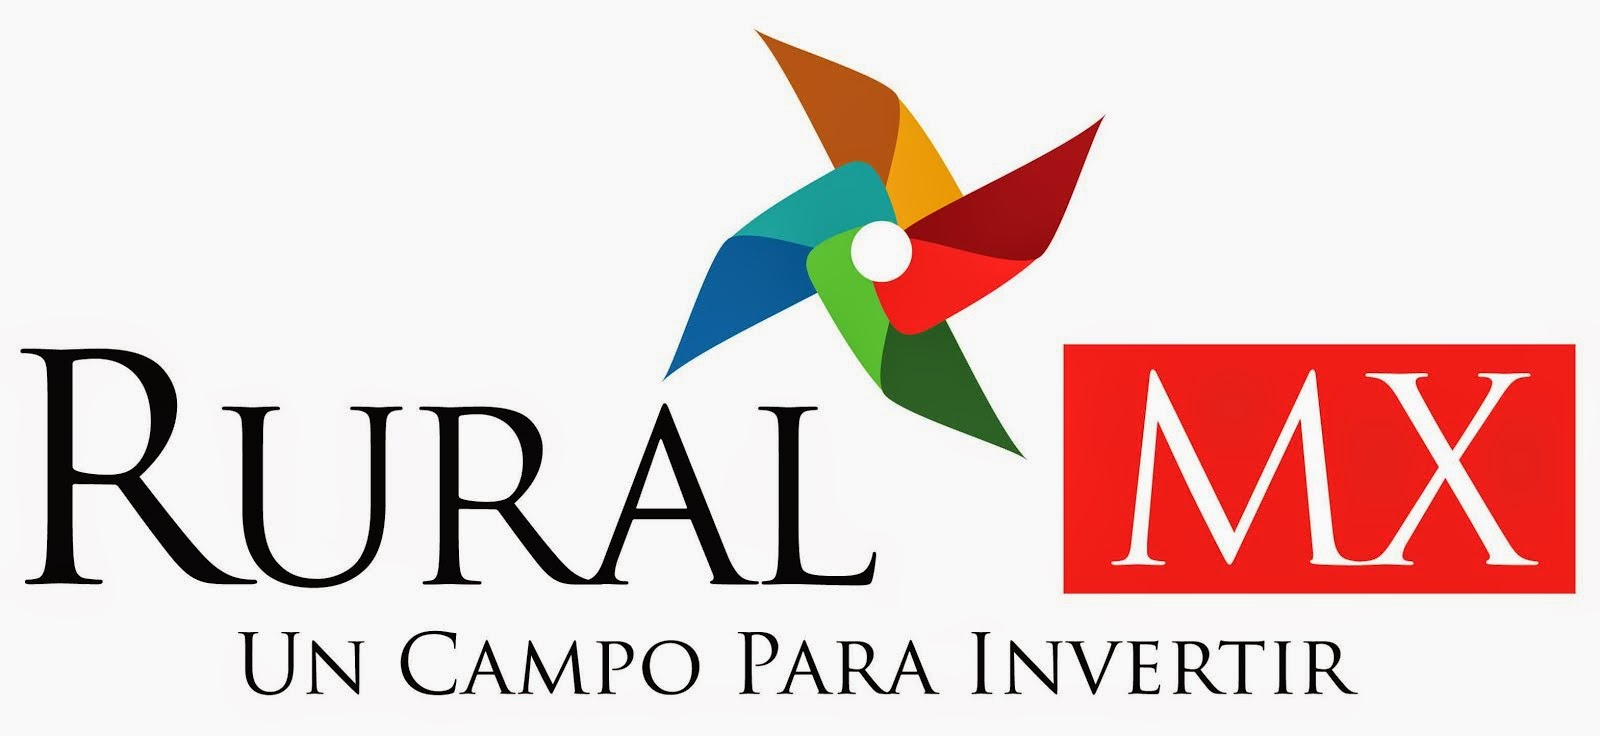 LEA LA REVISTA RURAL MX